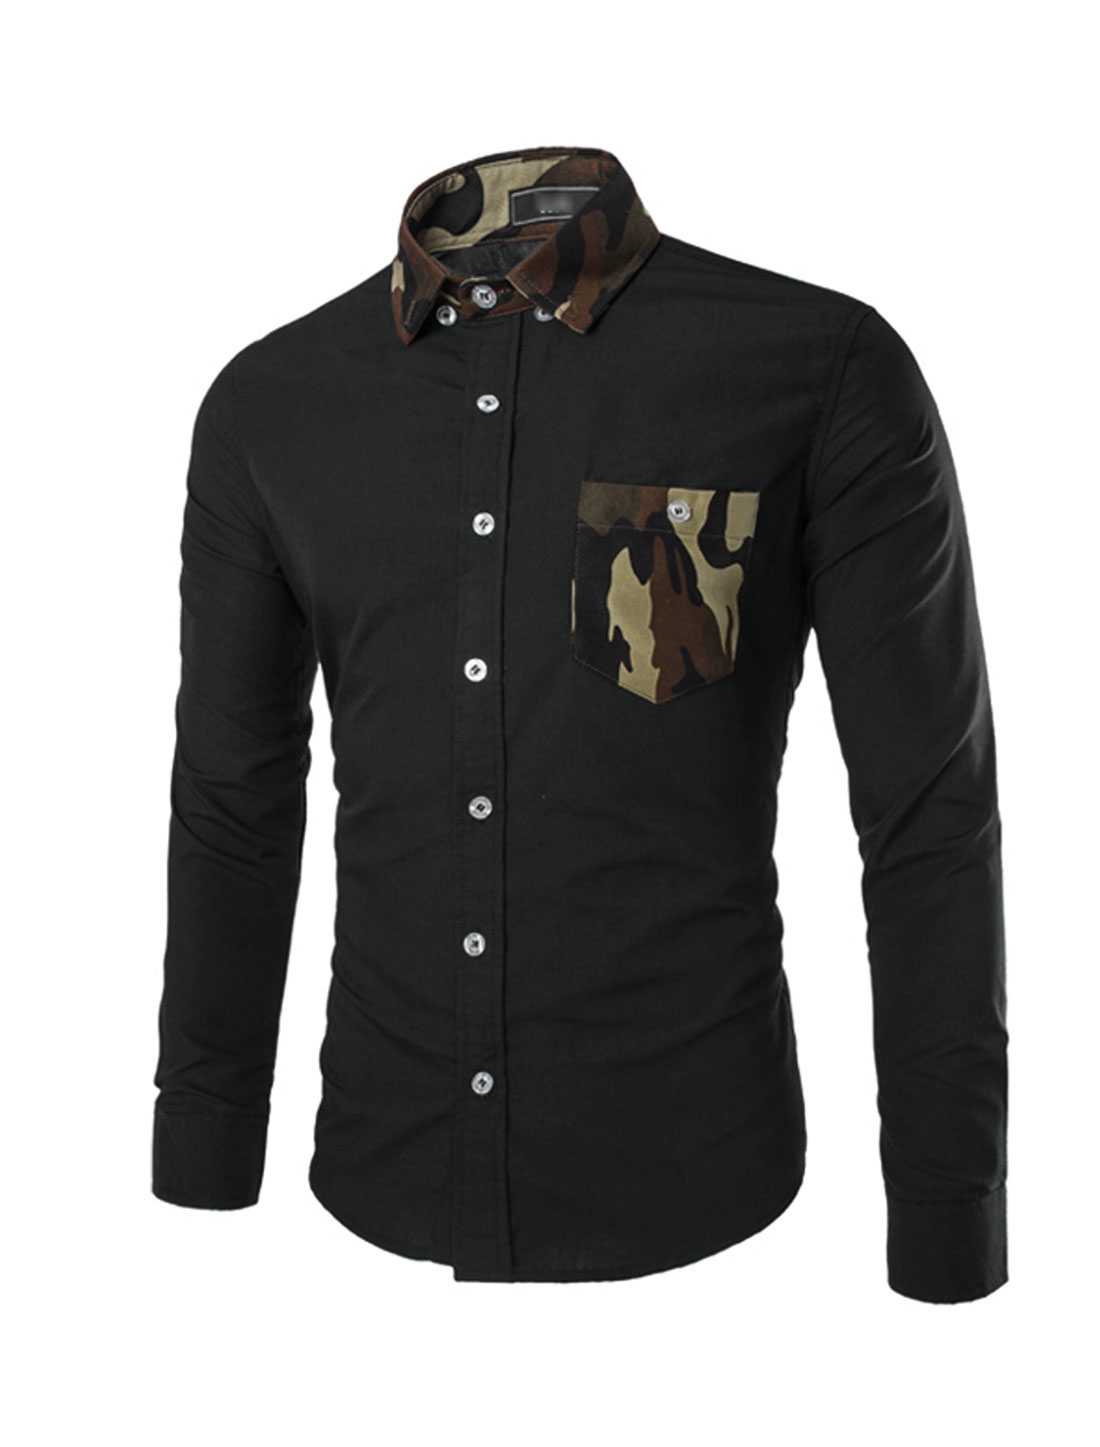 Men Long Sleeve Point Collar Button Down Camouflage Print Detail Shirt Black S